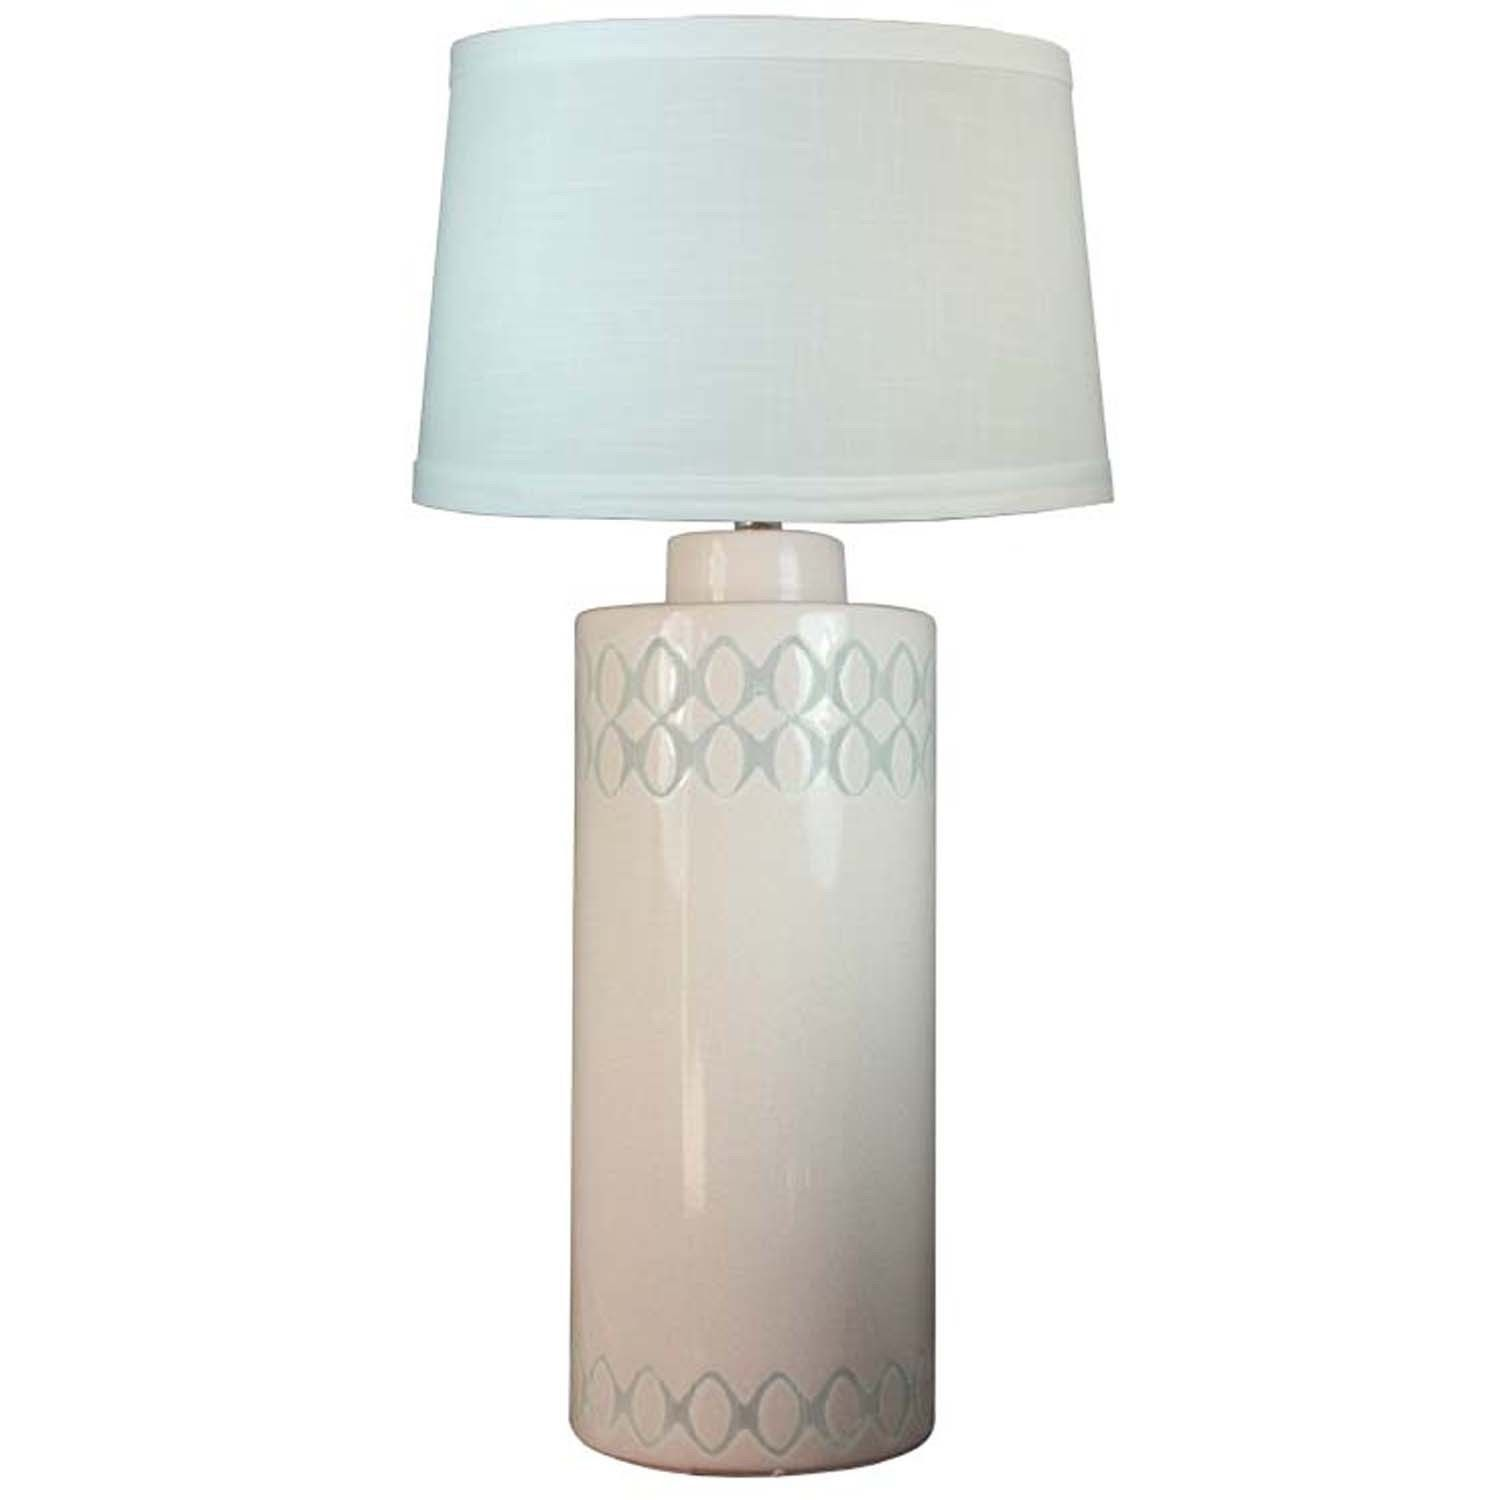 Fangio Lighting Stain Table Lamp